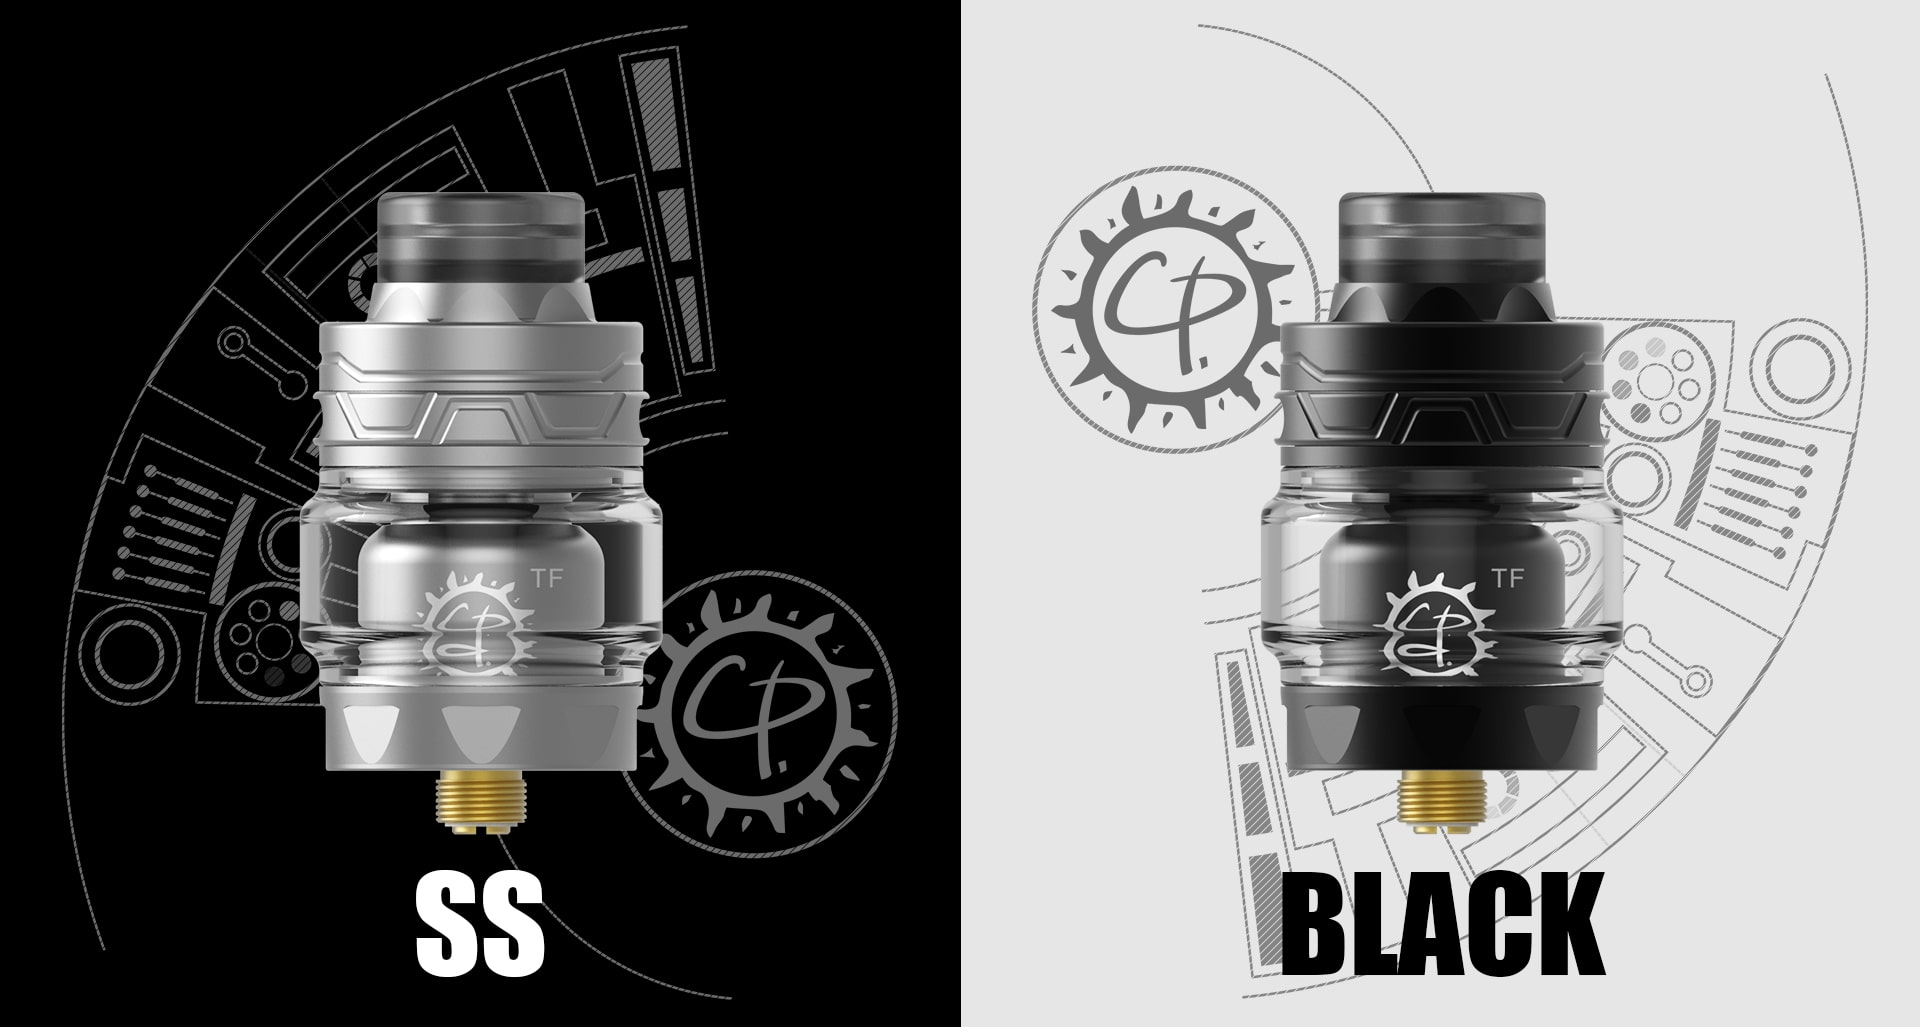 Advken CP TF RTA SS and black color